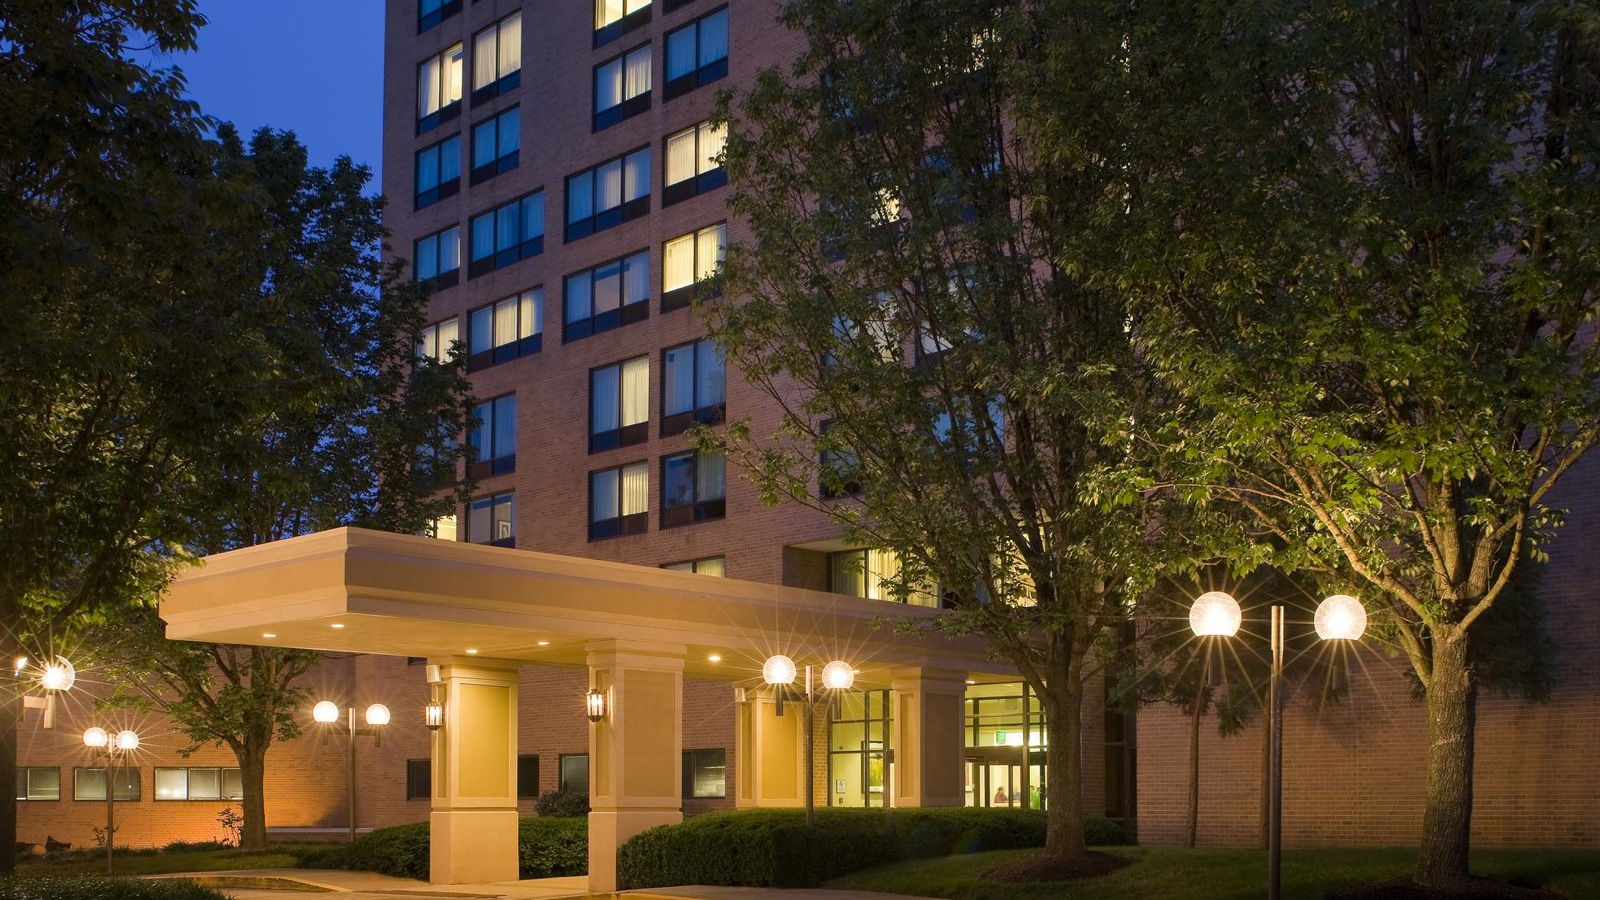 Sheraton Columbia Town Center Hotel | Hotel Features - Pet Policy